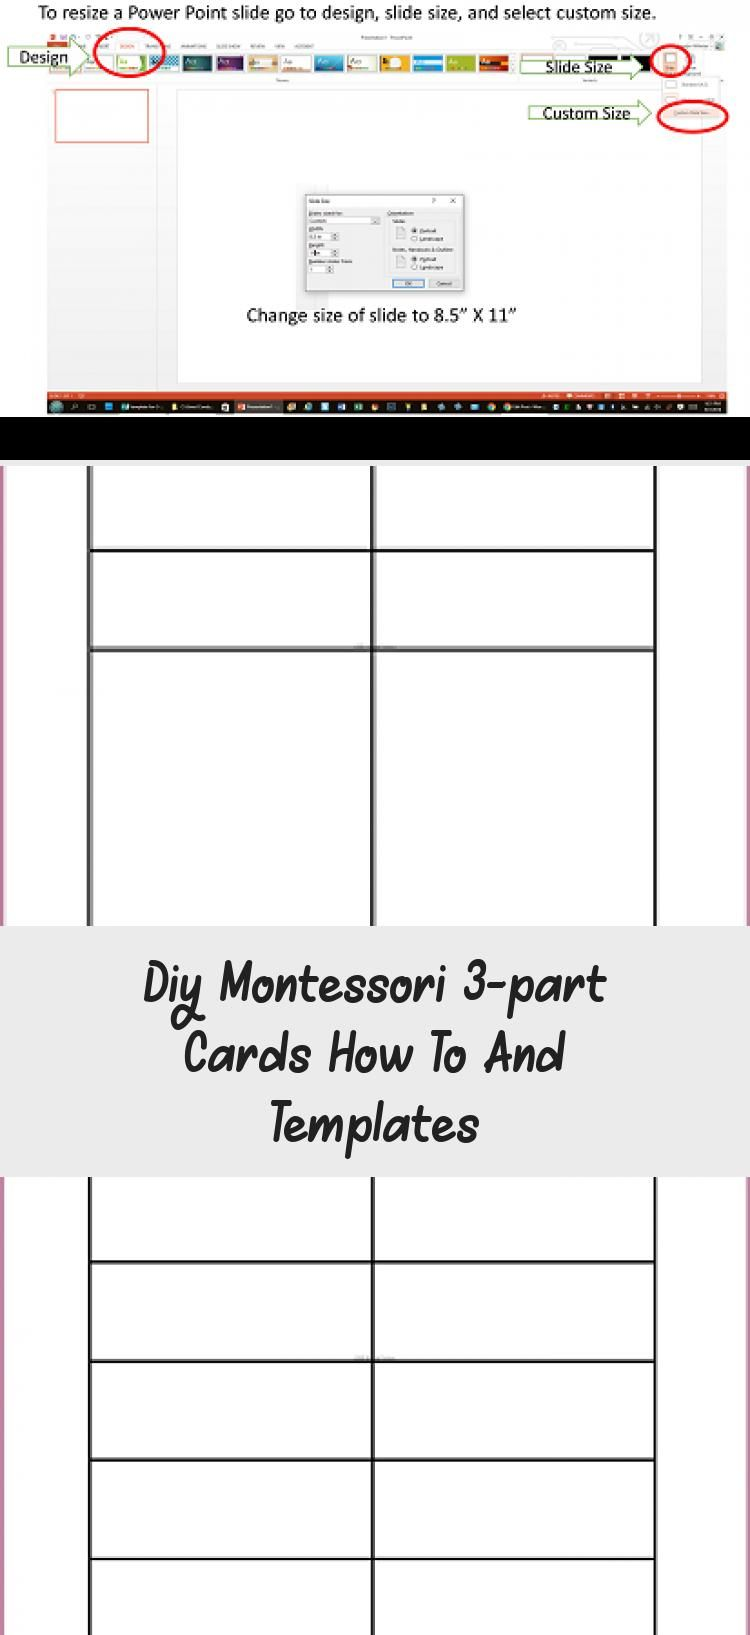 Diy Montessori 3 Part Cards How To And Templates Informational Blog Post And Video With Information About How To Make 3 Part Cards As Well As Free Templates